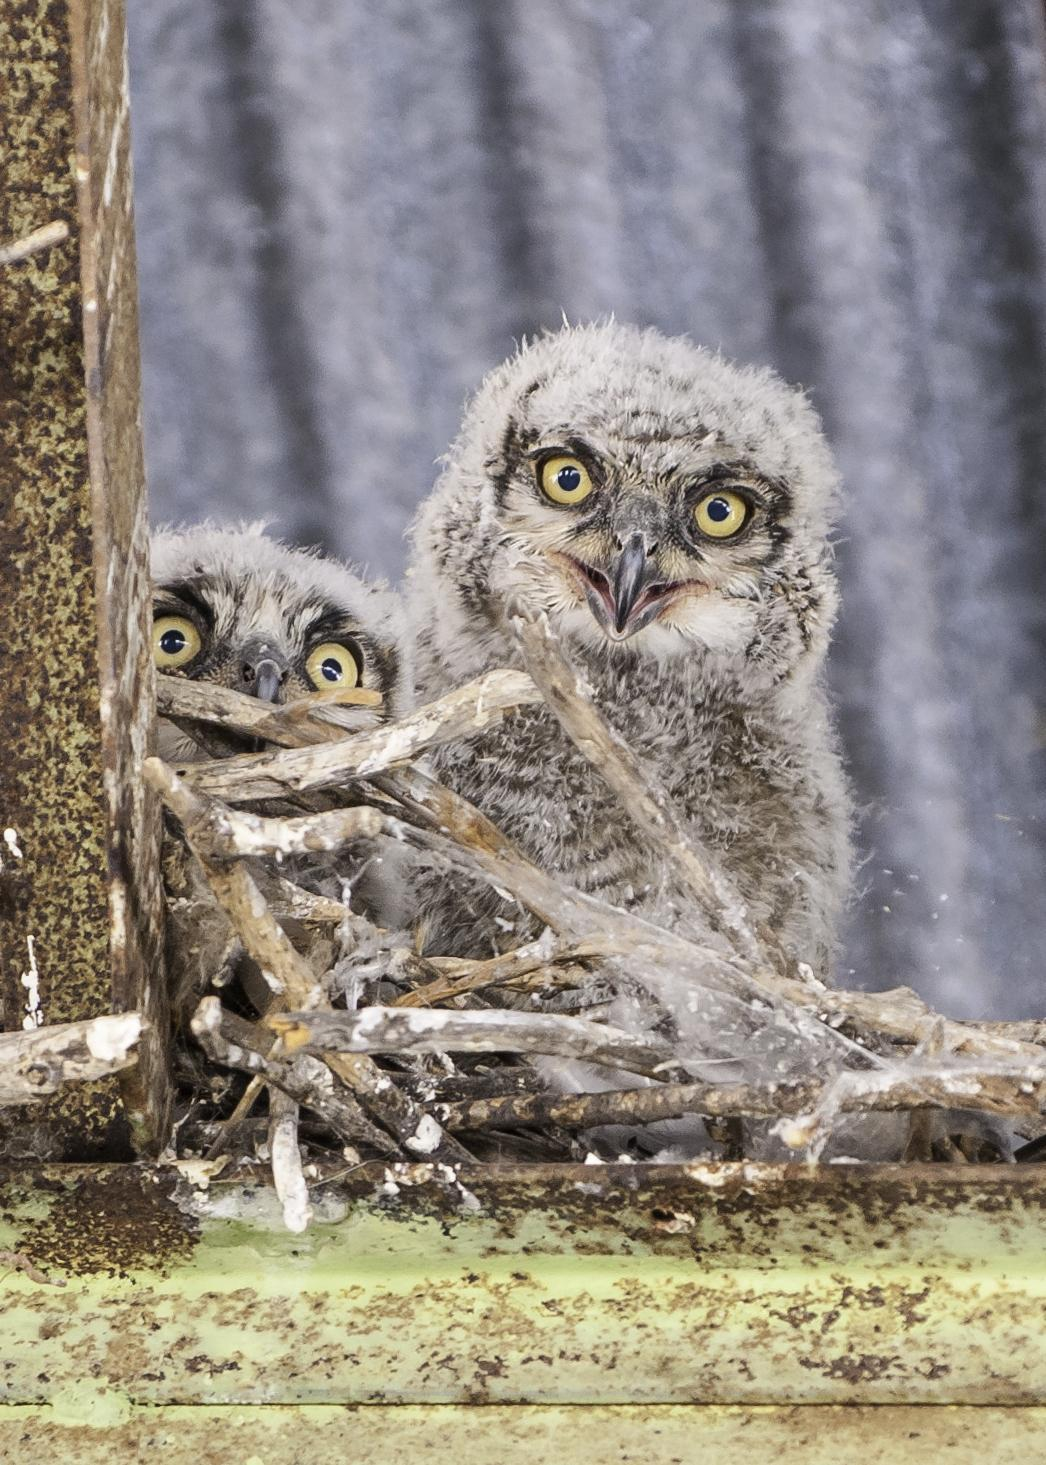 Great Horned Owl Photo by Mason Rose